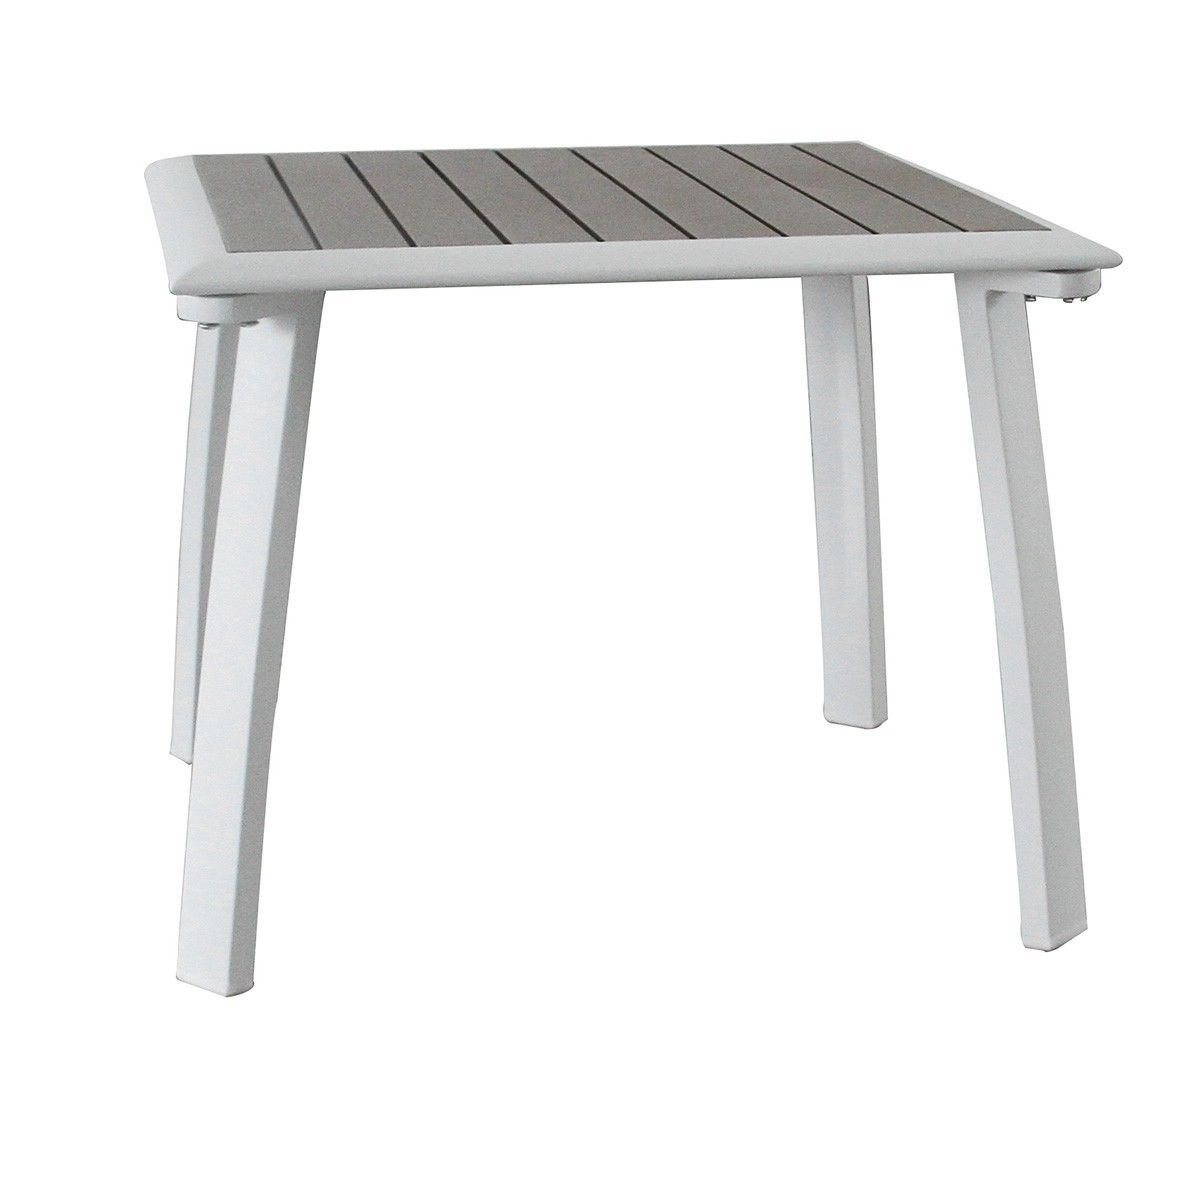 white outdoor side tables medium size coffee round glass ruby aluminium table accent workstation furniture small corner monarch vintage industrial end diy base frames vancouver